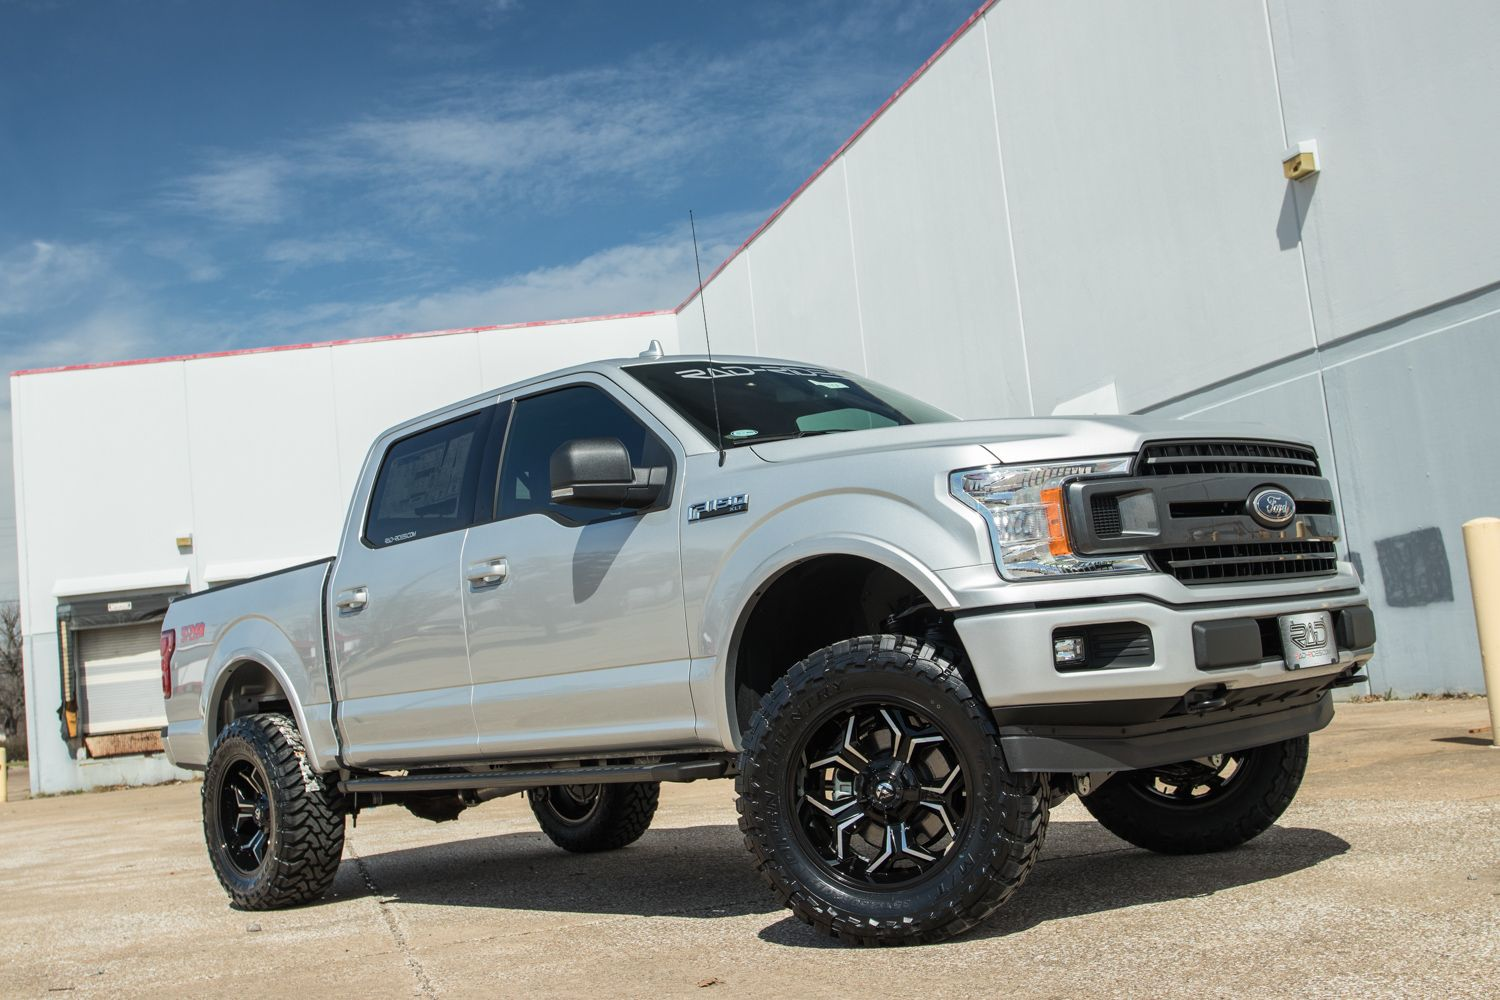 lifted 4x4 2018 ford f 150 radx stage 2 silver custom truck rad rides [ 1500 x 1000 Pixel ]